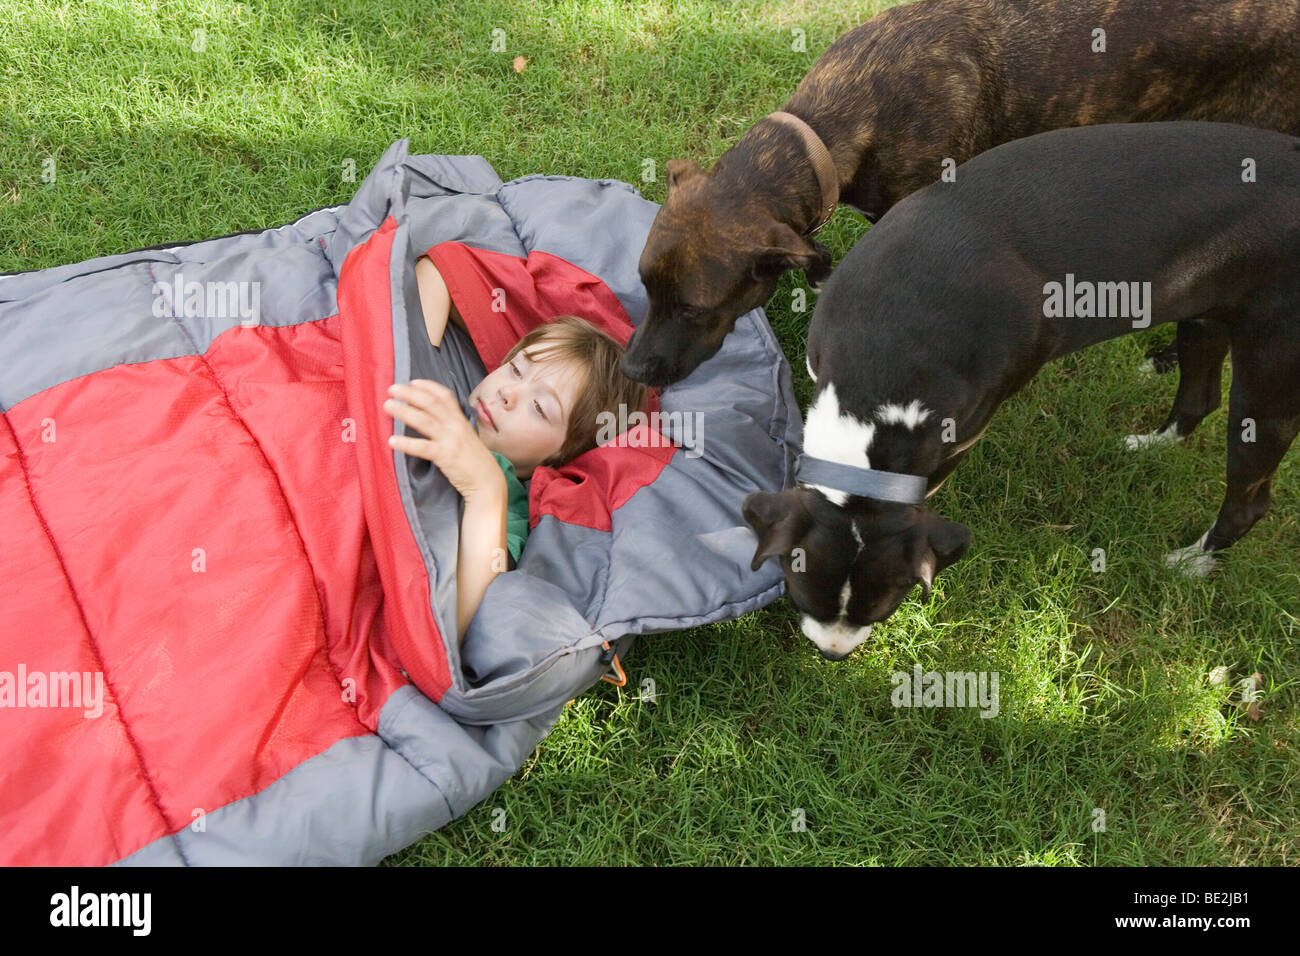 a boy in a sleeping bag is visited by pet dogs - Stock Image